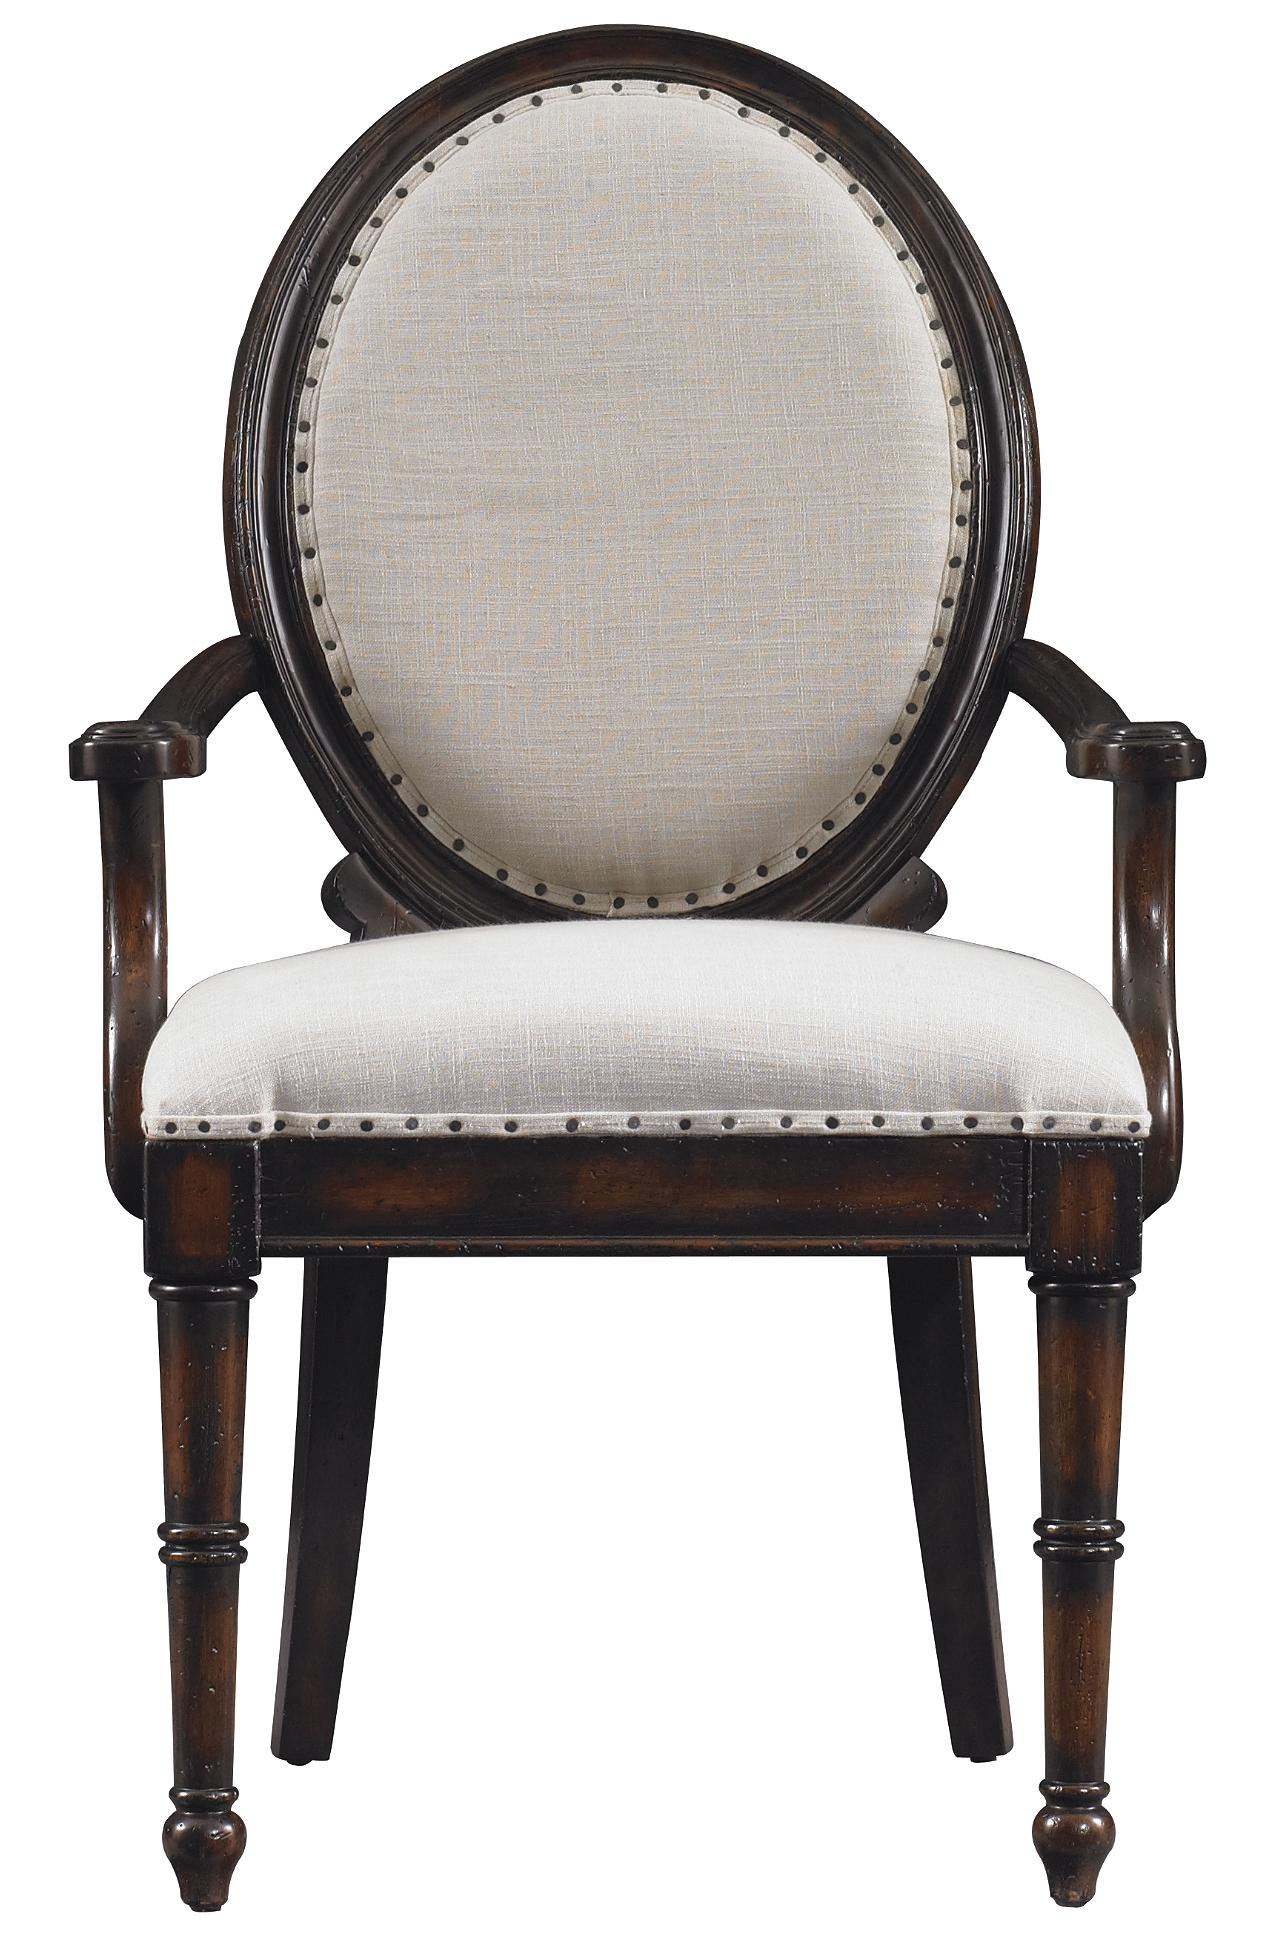 Stanley Furniture European Farmhouse Million Stars Hostess Chair - Item Number: 018-11-71